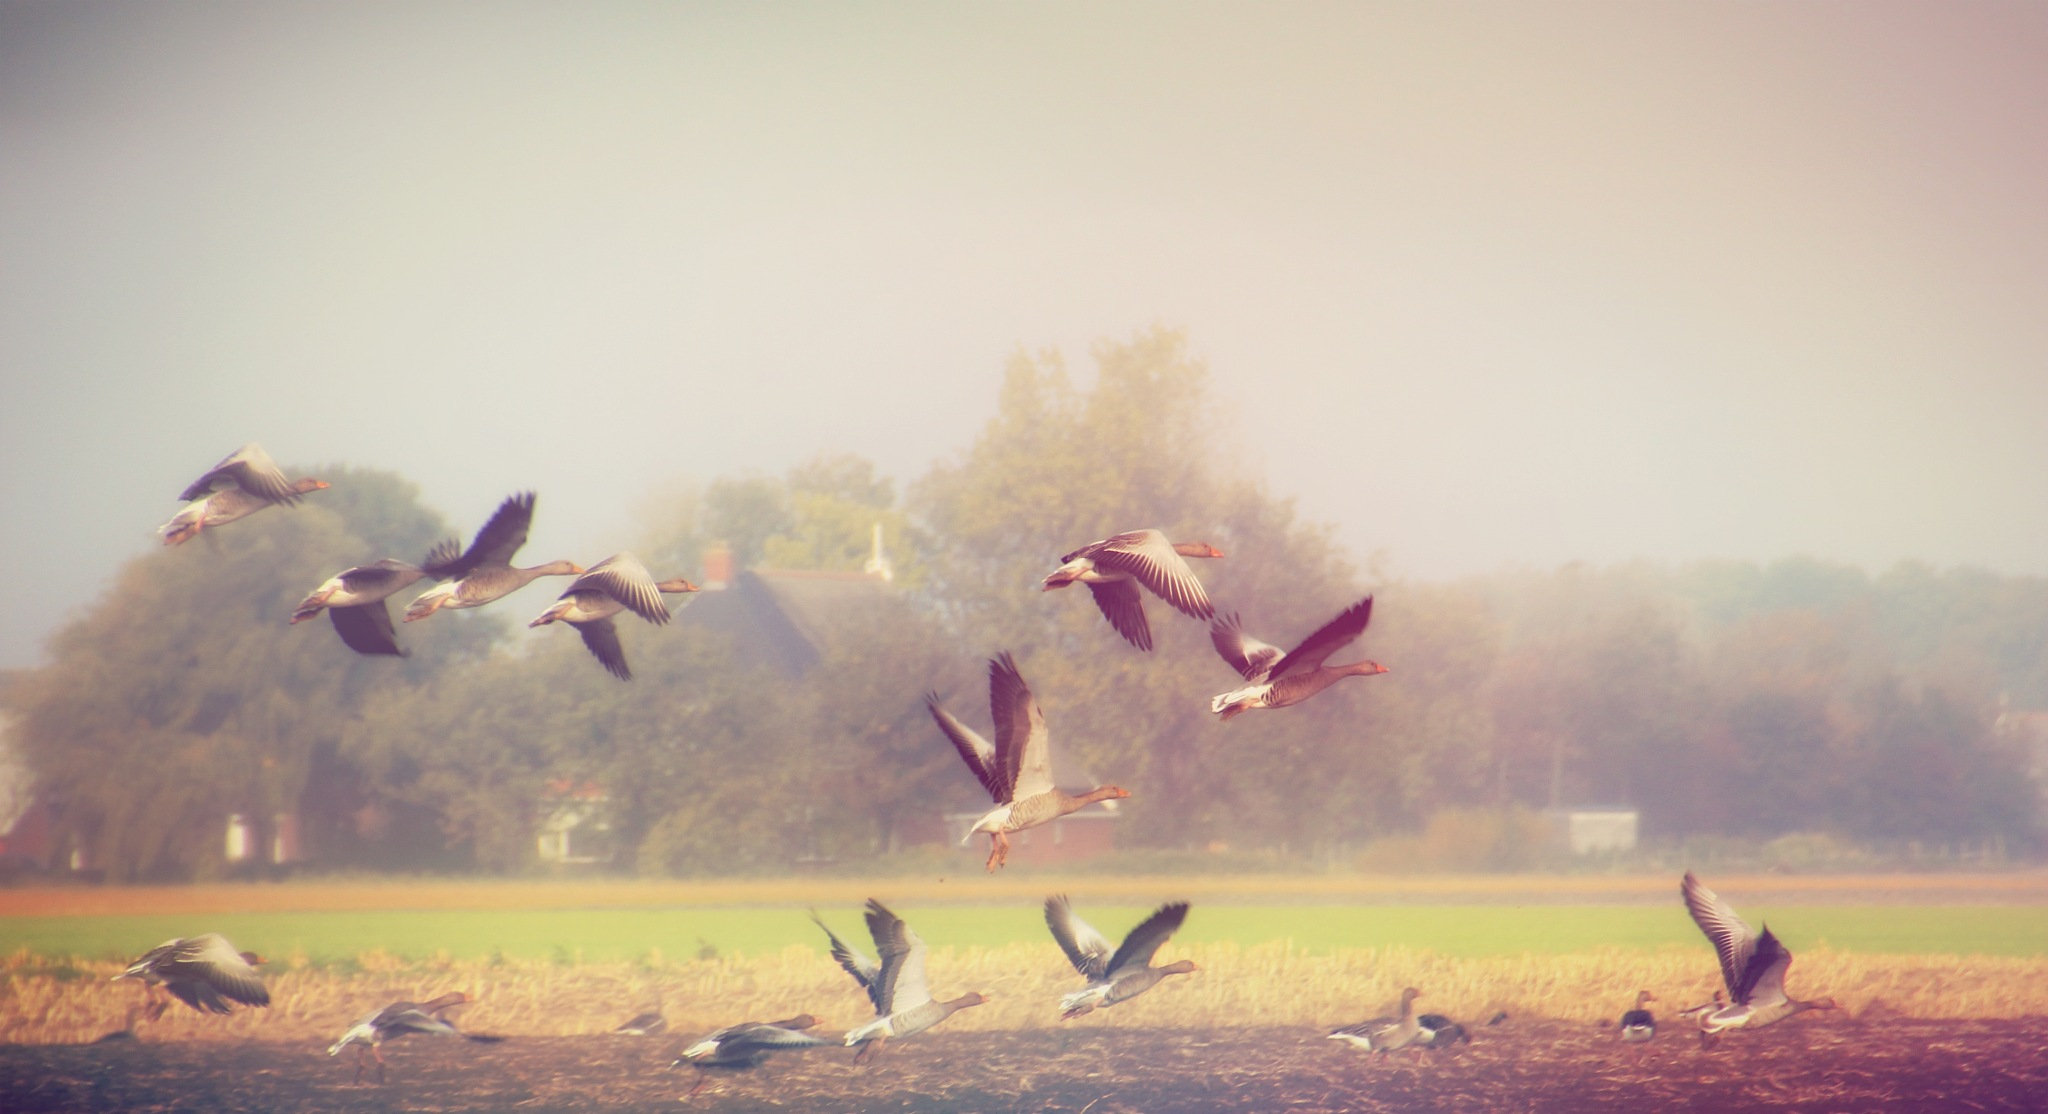 Geese on a flight by annamaria.jacobsgalluzzi